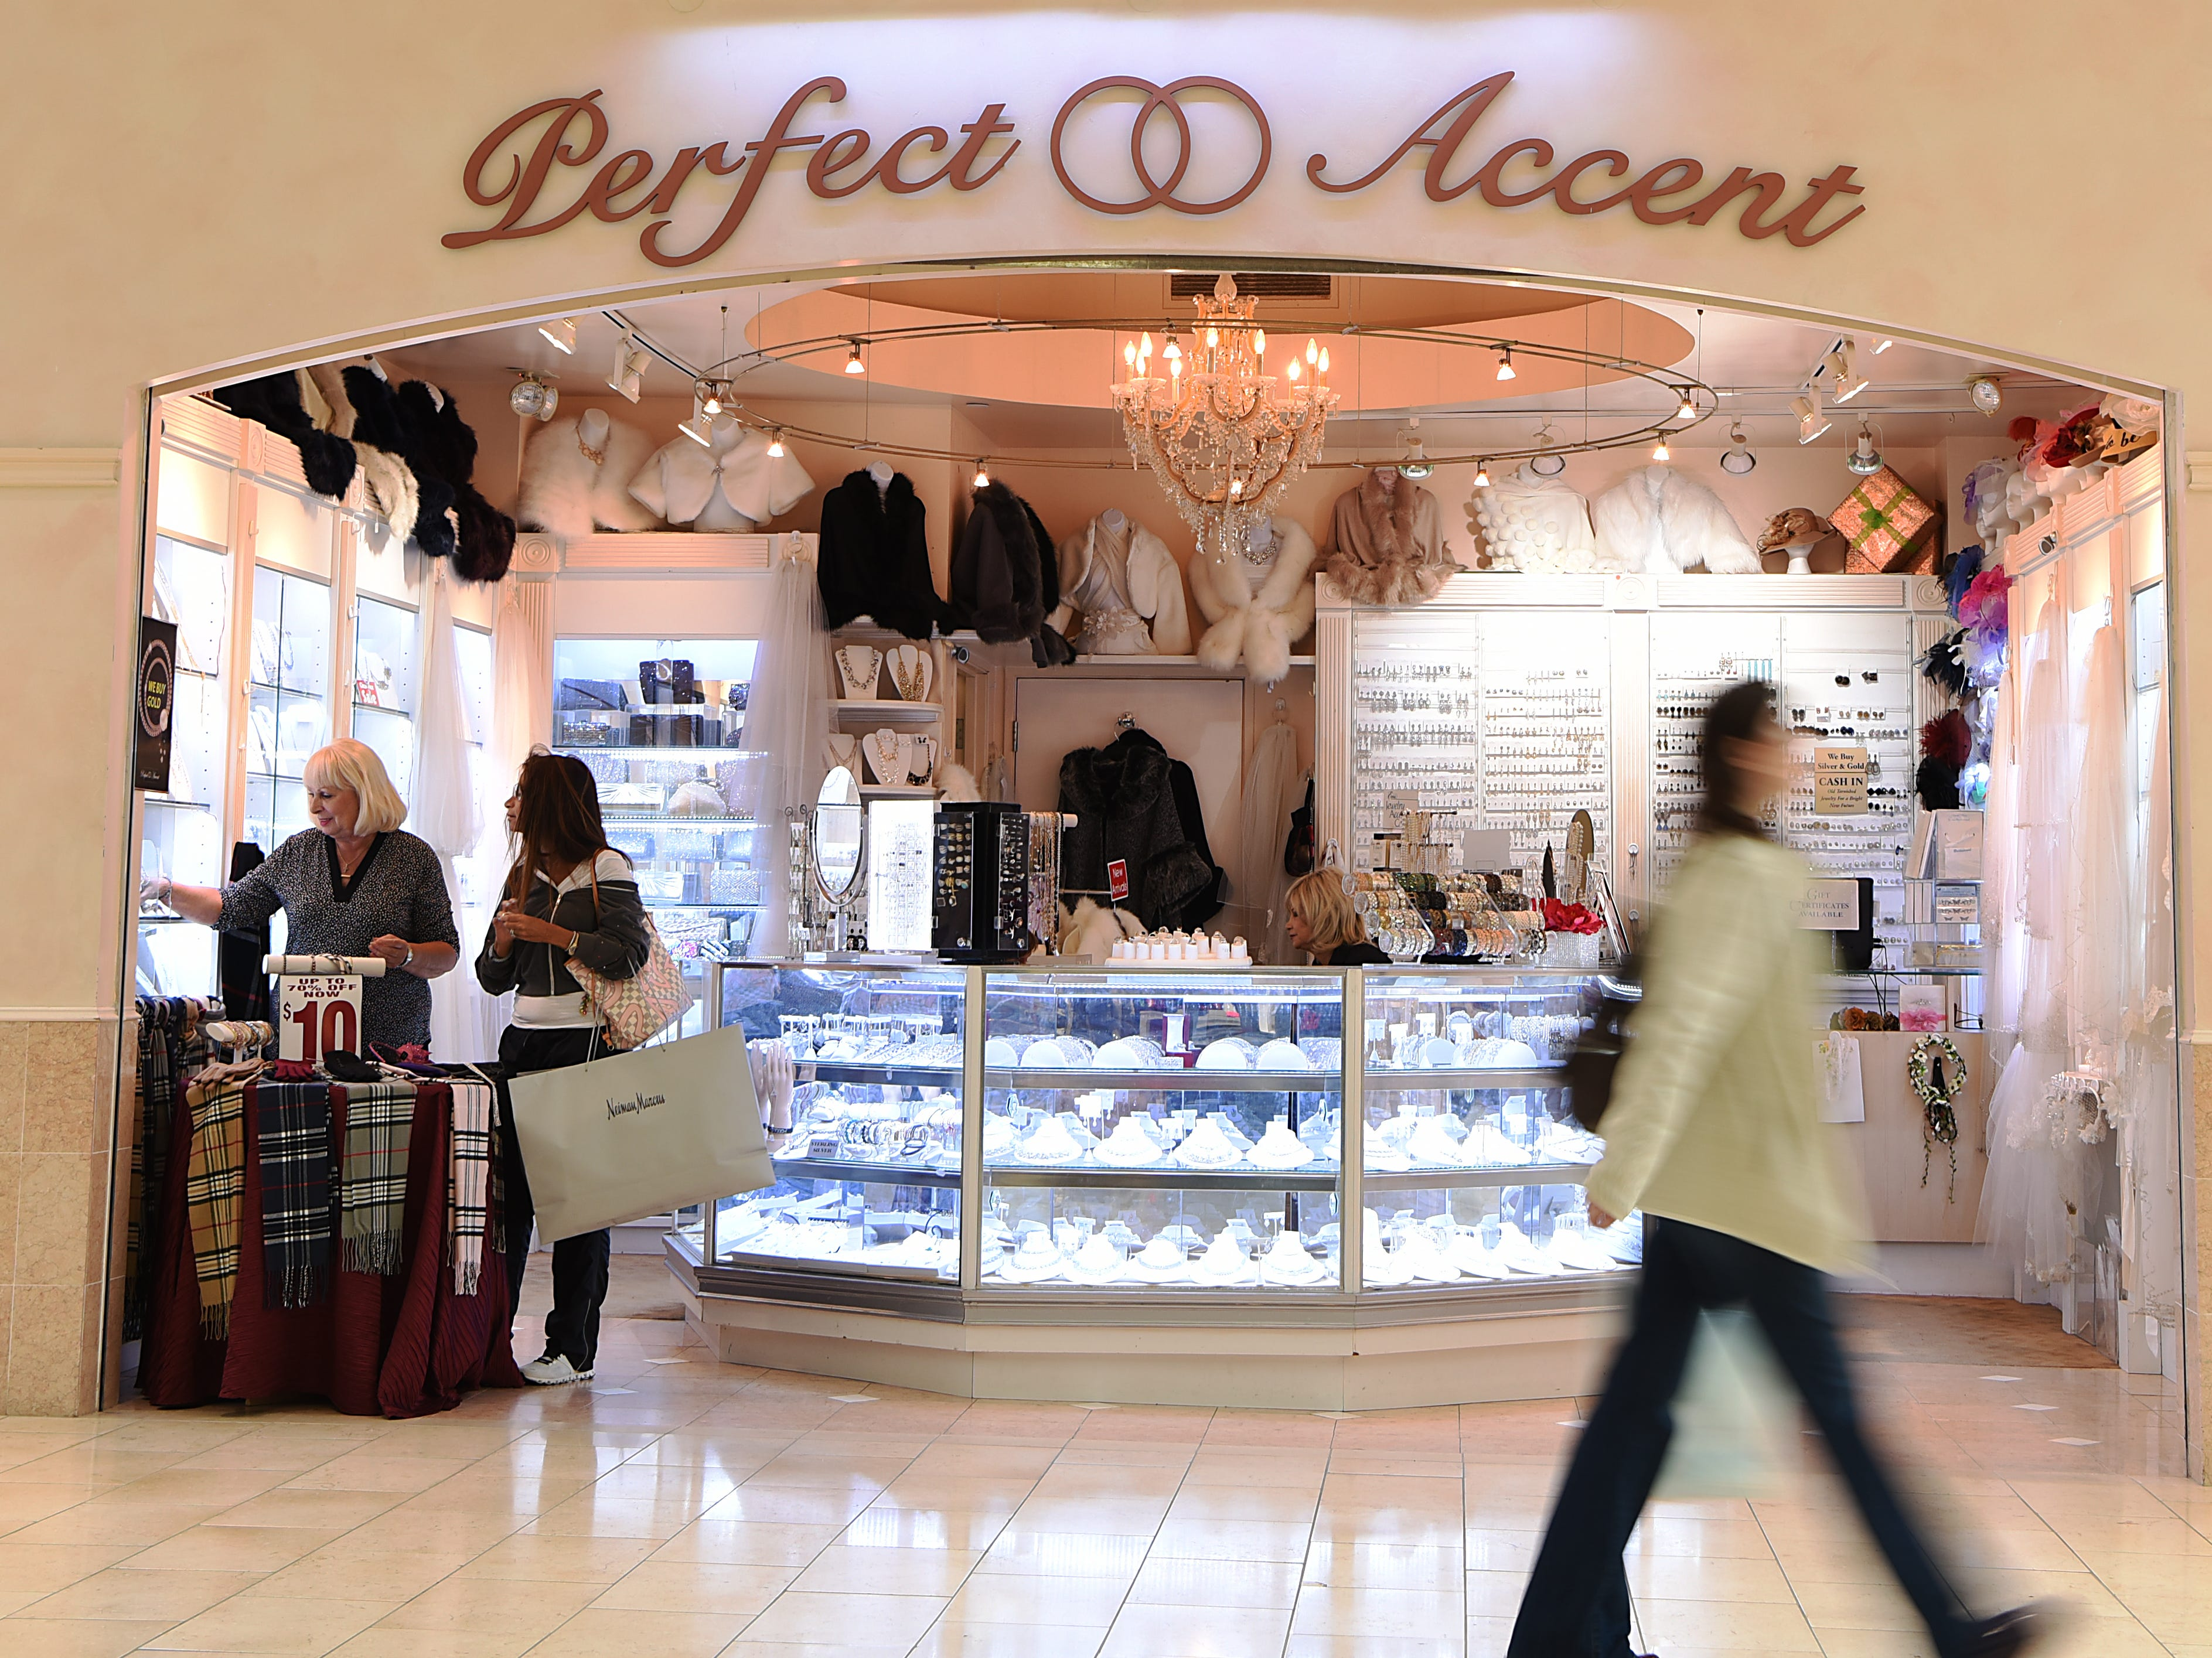 Perfect Accent, an accessories store located in the Garden State Plaza Mall, will be closing. The exterior of Perfect Accent shown in Paramus on Friday November 2, 2018.